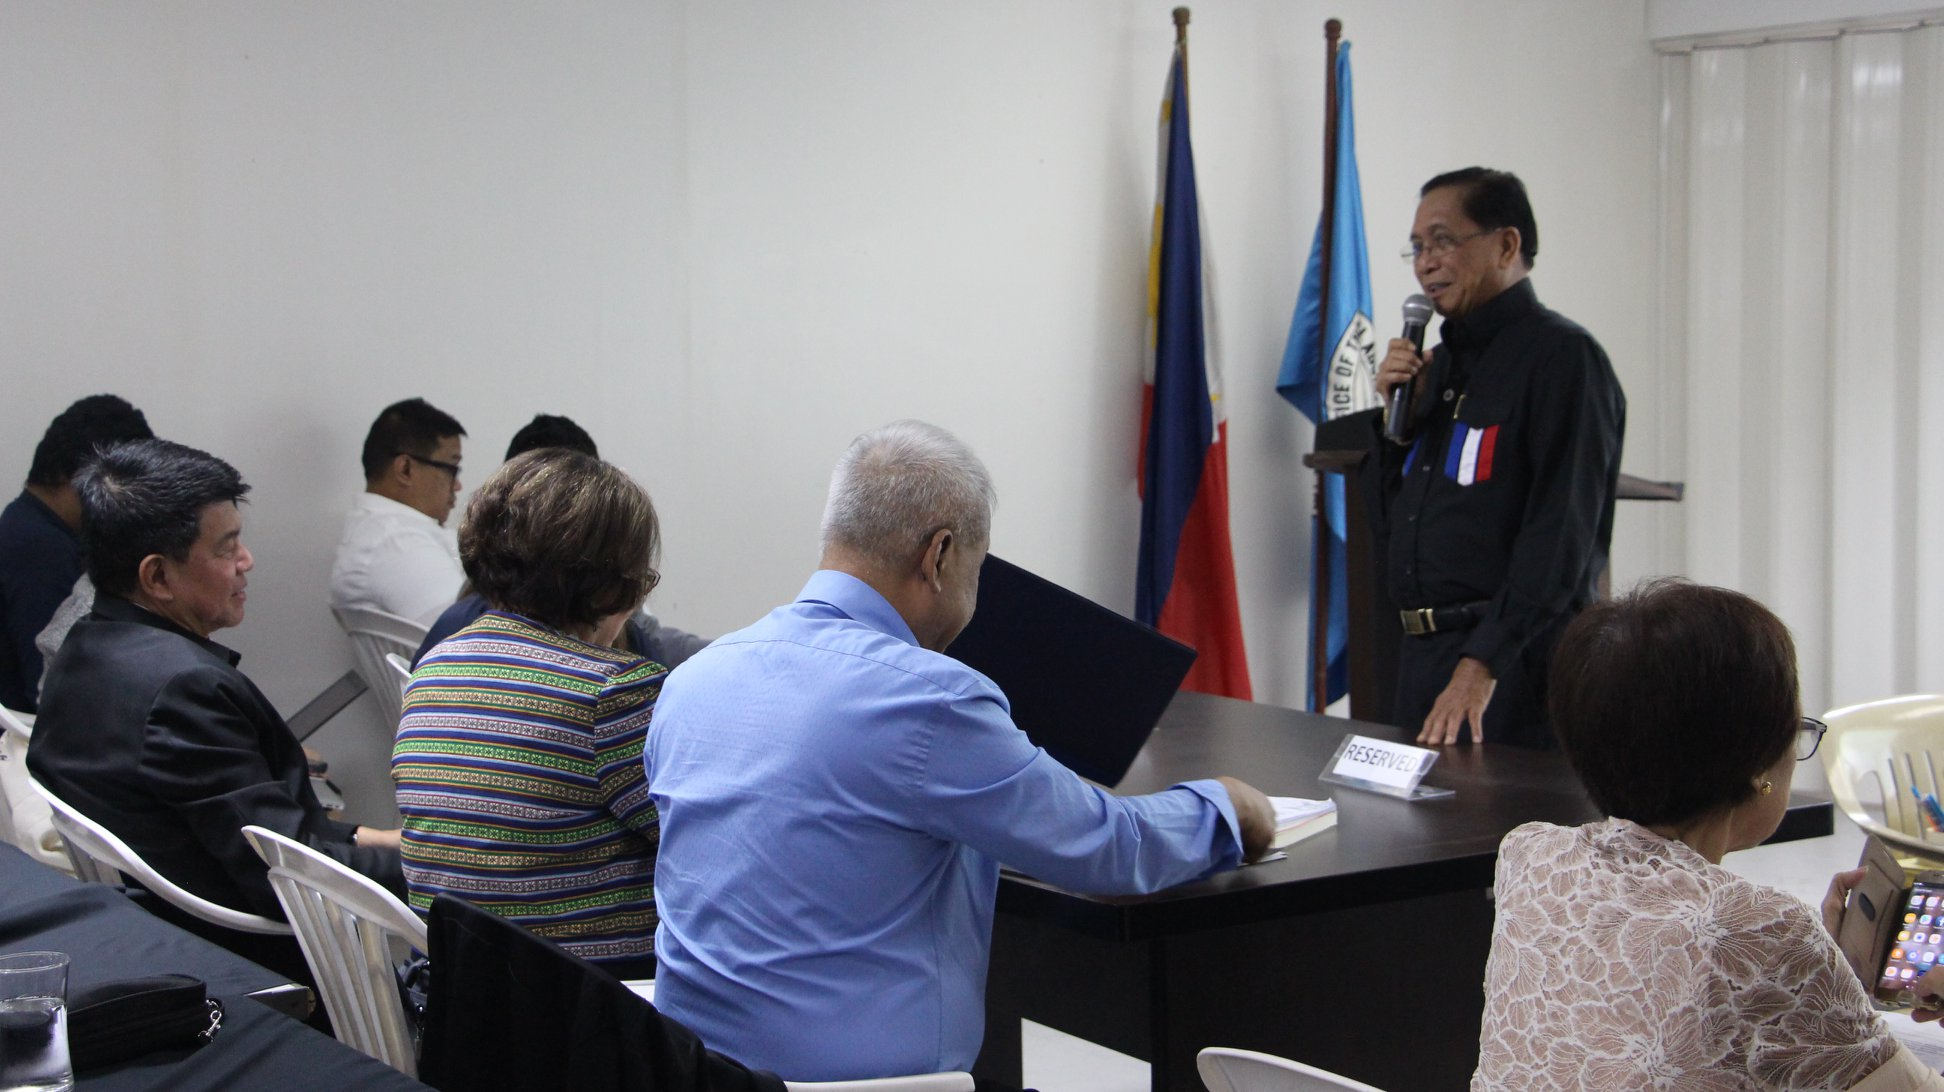 Dureza: Peace process requires dealing with the past